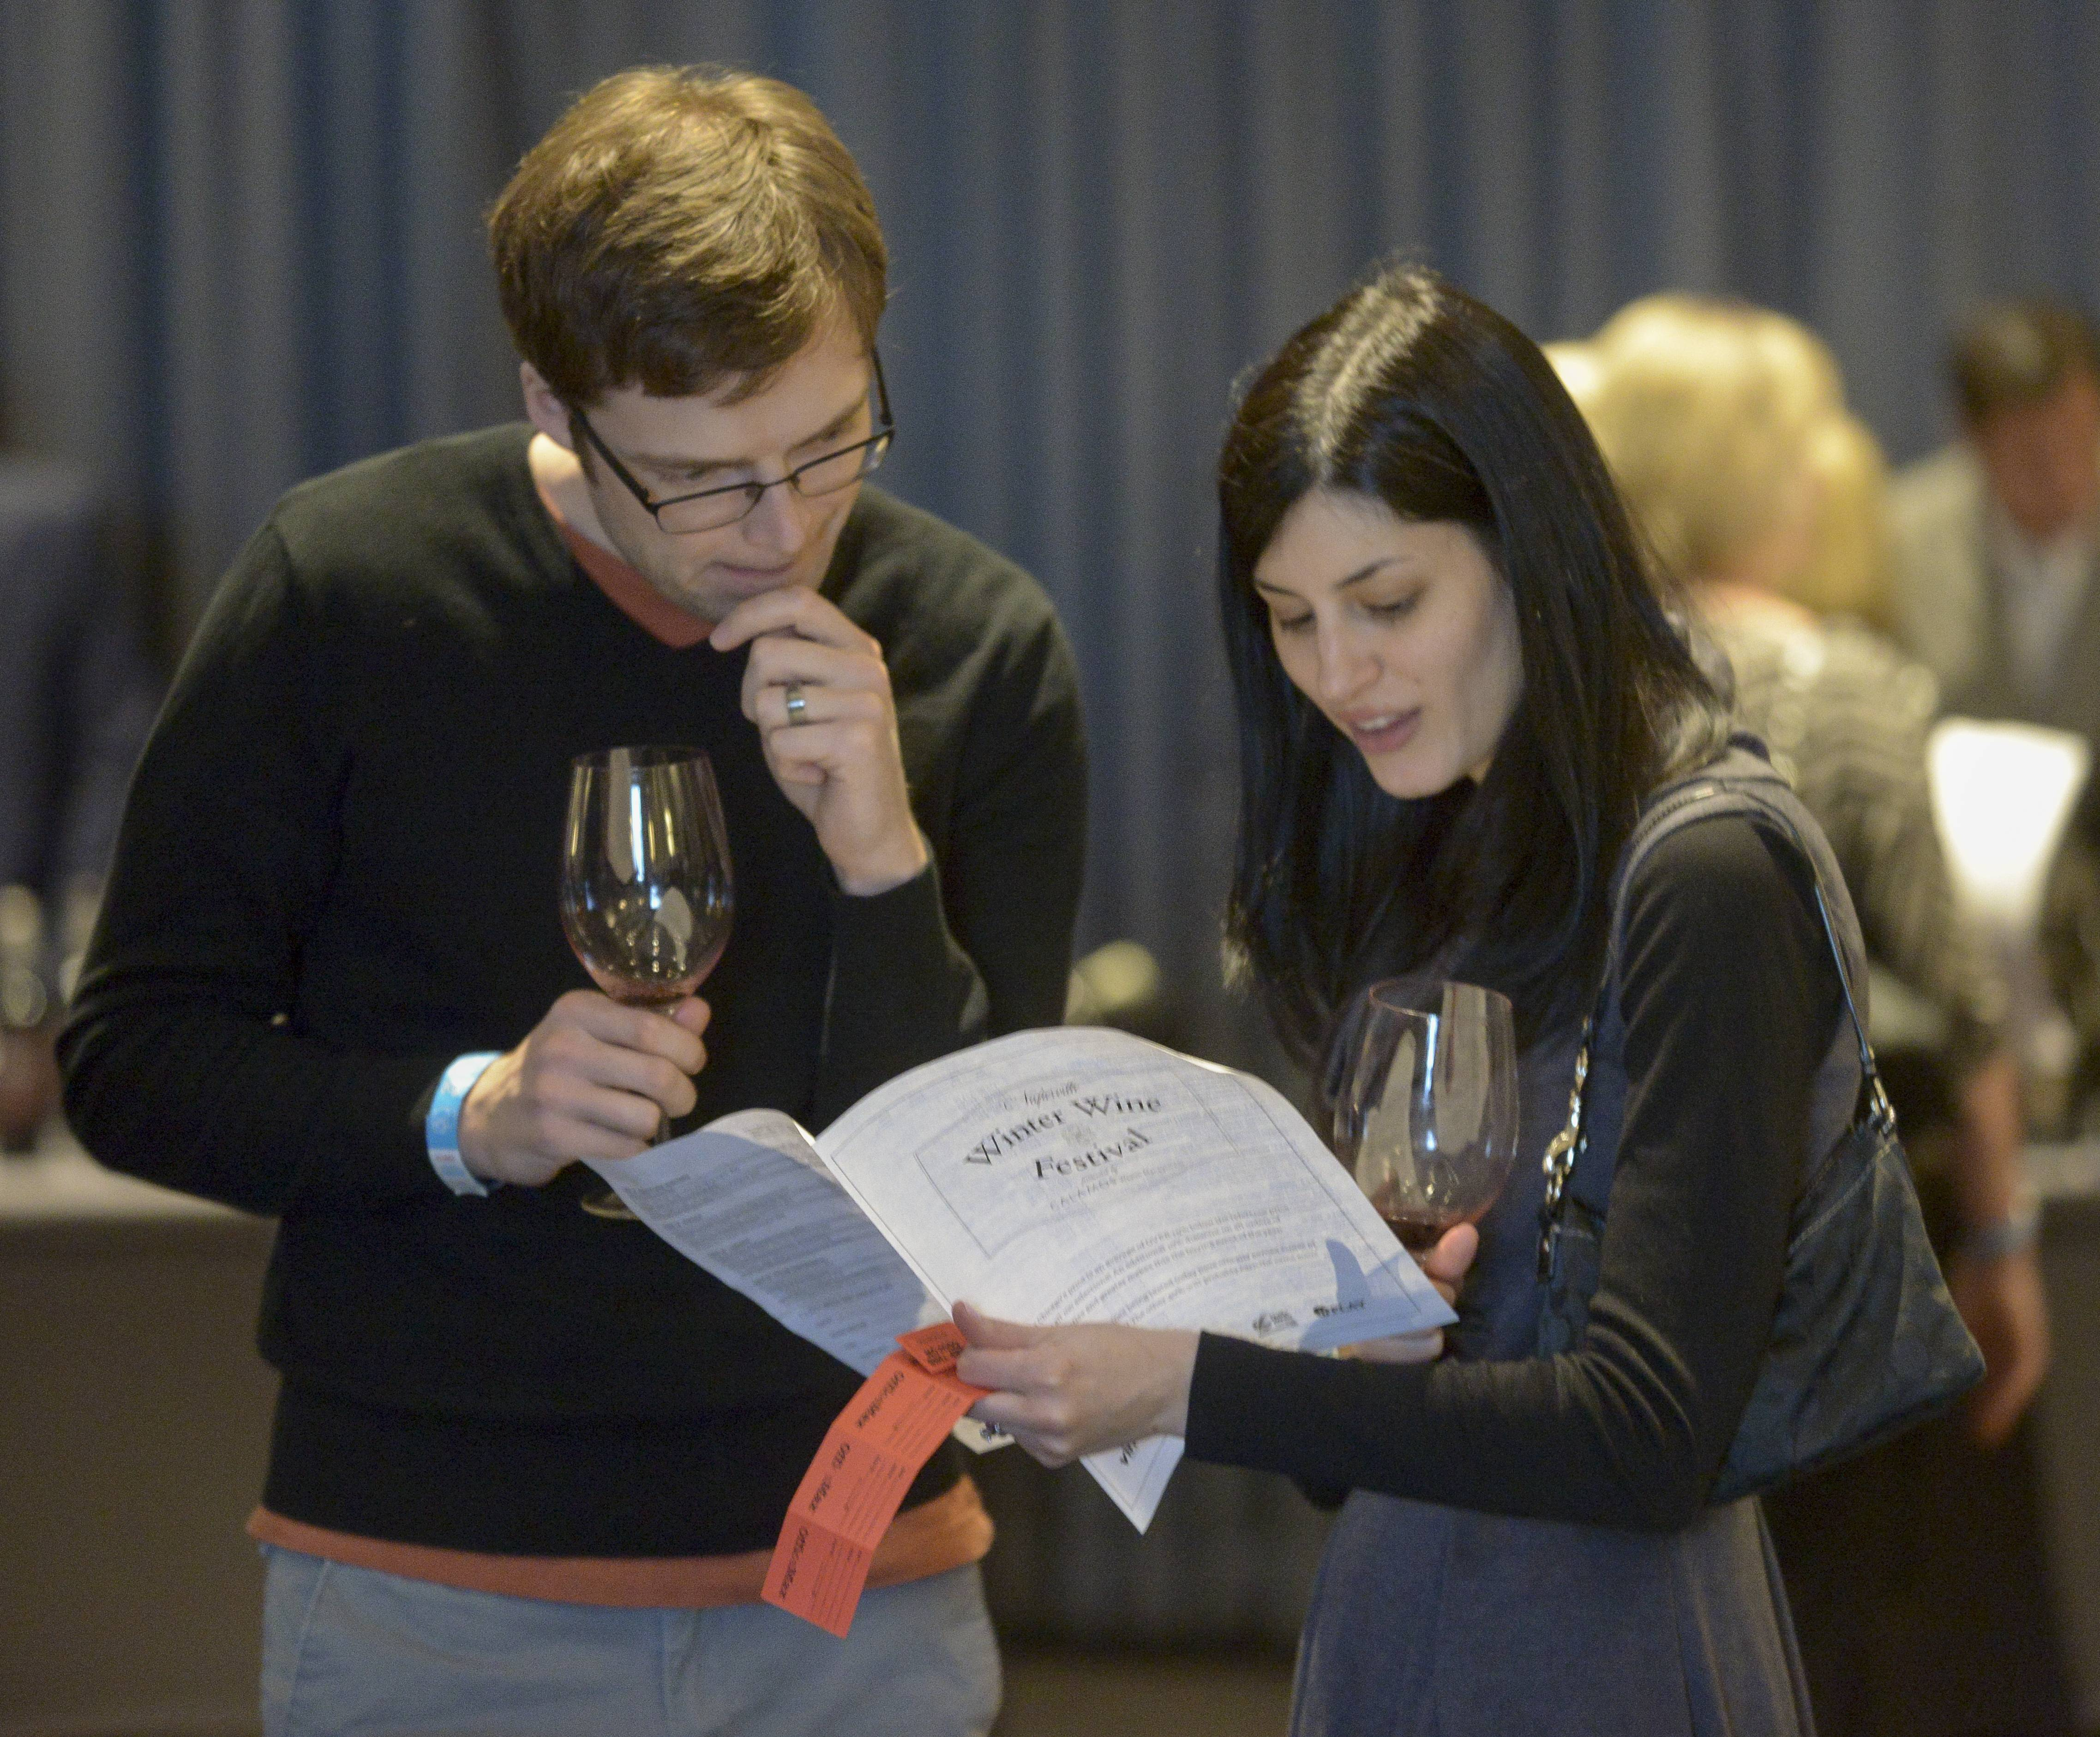 Steve Chuddy and Alesha Bondari of Villa Park look over the list of wines while attending the Naperville Winter Wine Festival at the Hotel Arista in Naperville. A portion of proceeds from the event was donated to DuPage PADS.